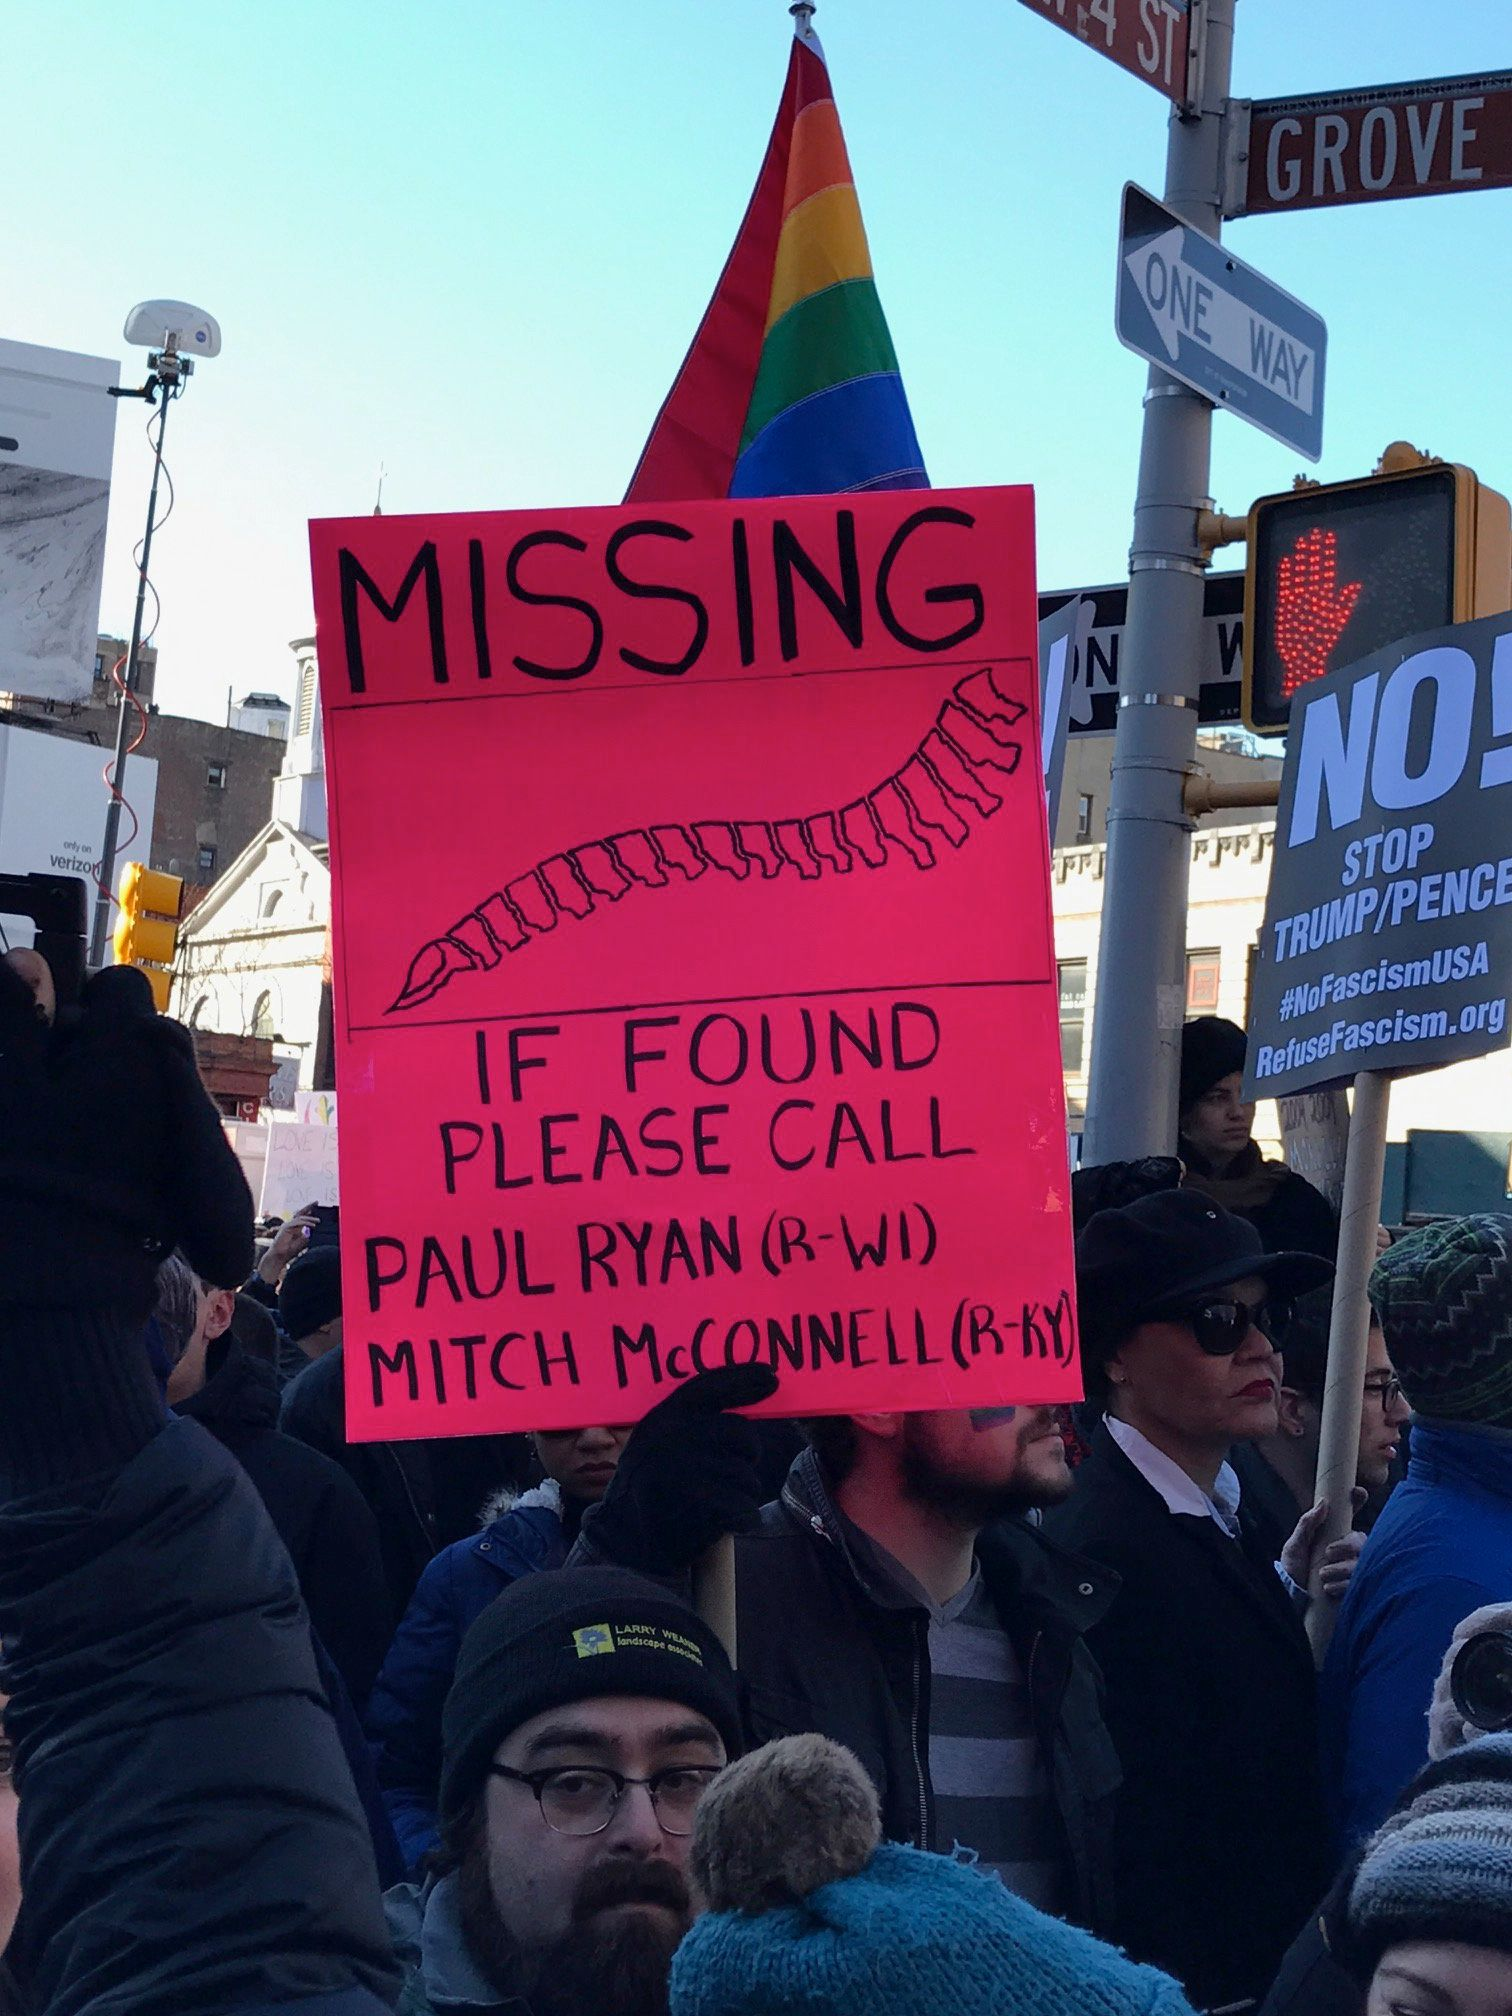 24 Of The Best Signs From New York's LGBTQ Solidarity